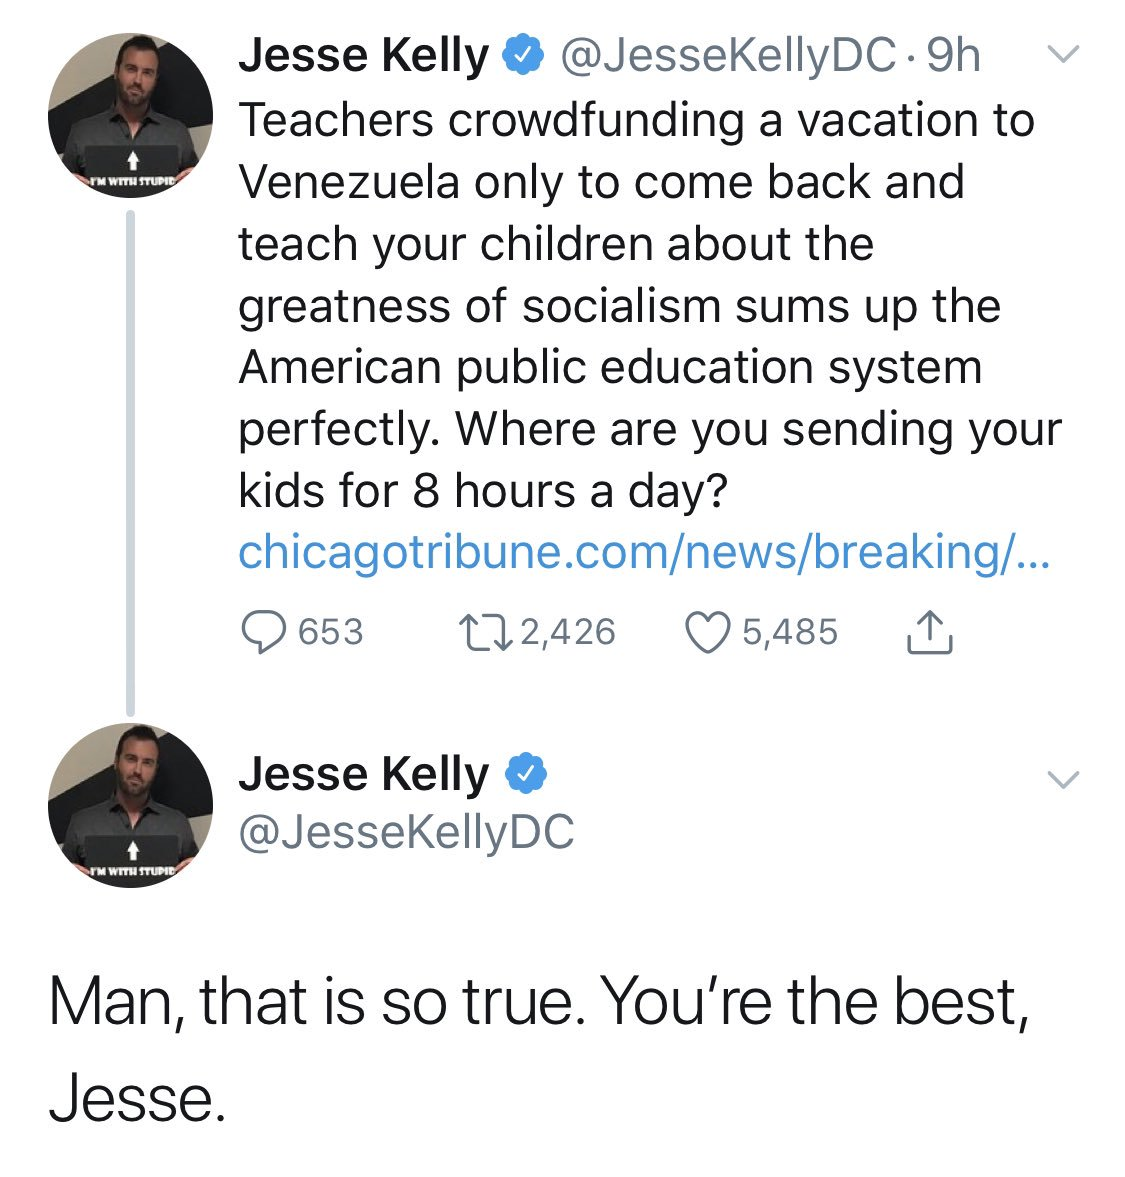 I'm sure Federalist types do a lot of self-praise on alt accounts but this one's so on the nose it'll make your eyes water. if you're a bigot near Jesse please give him a hug